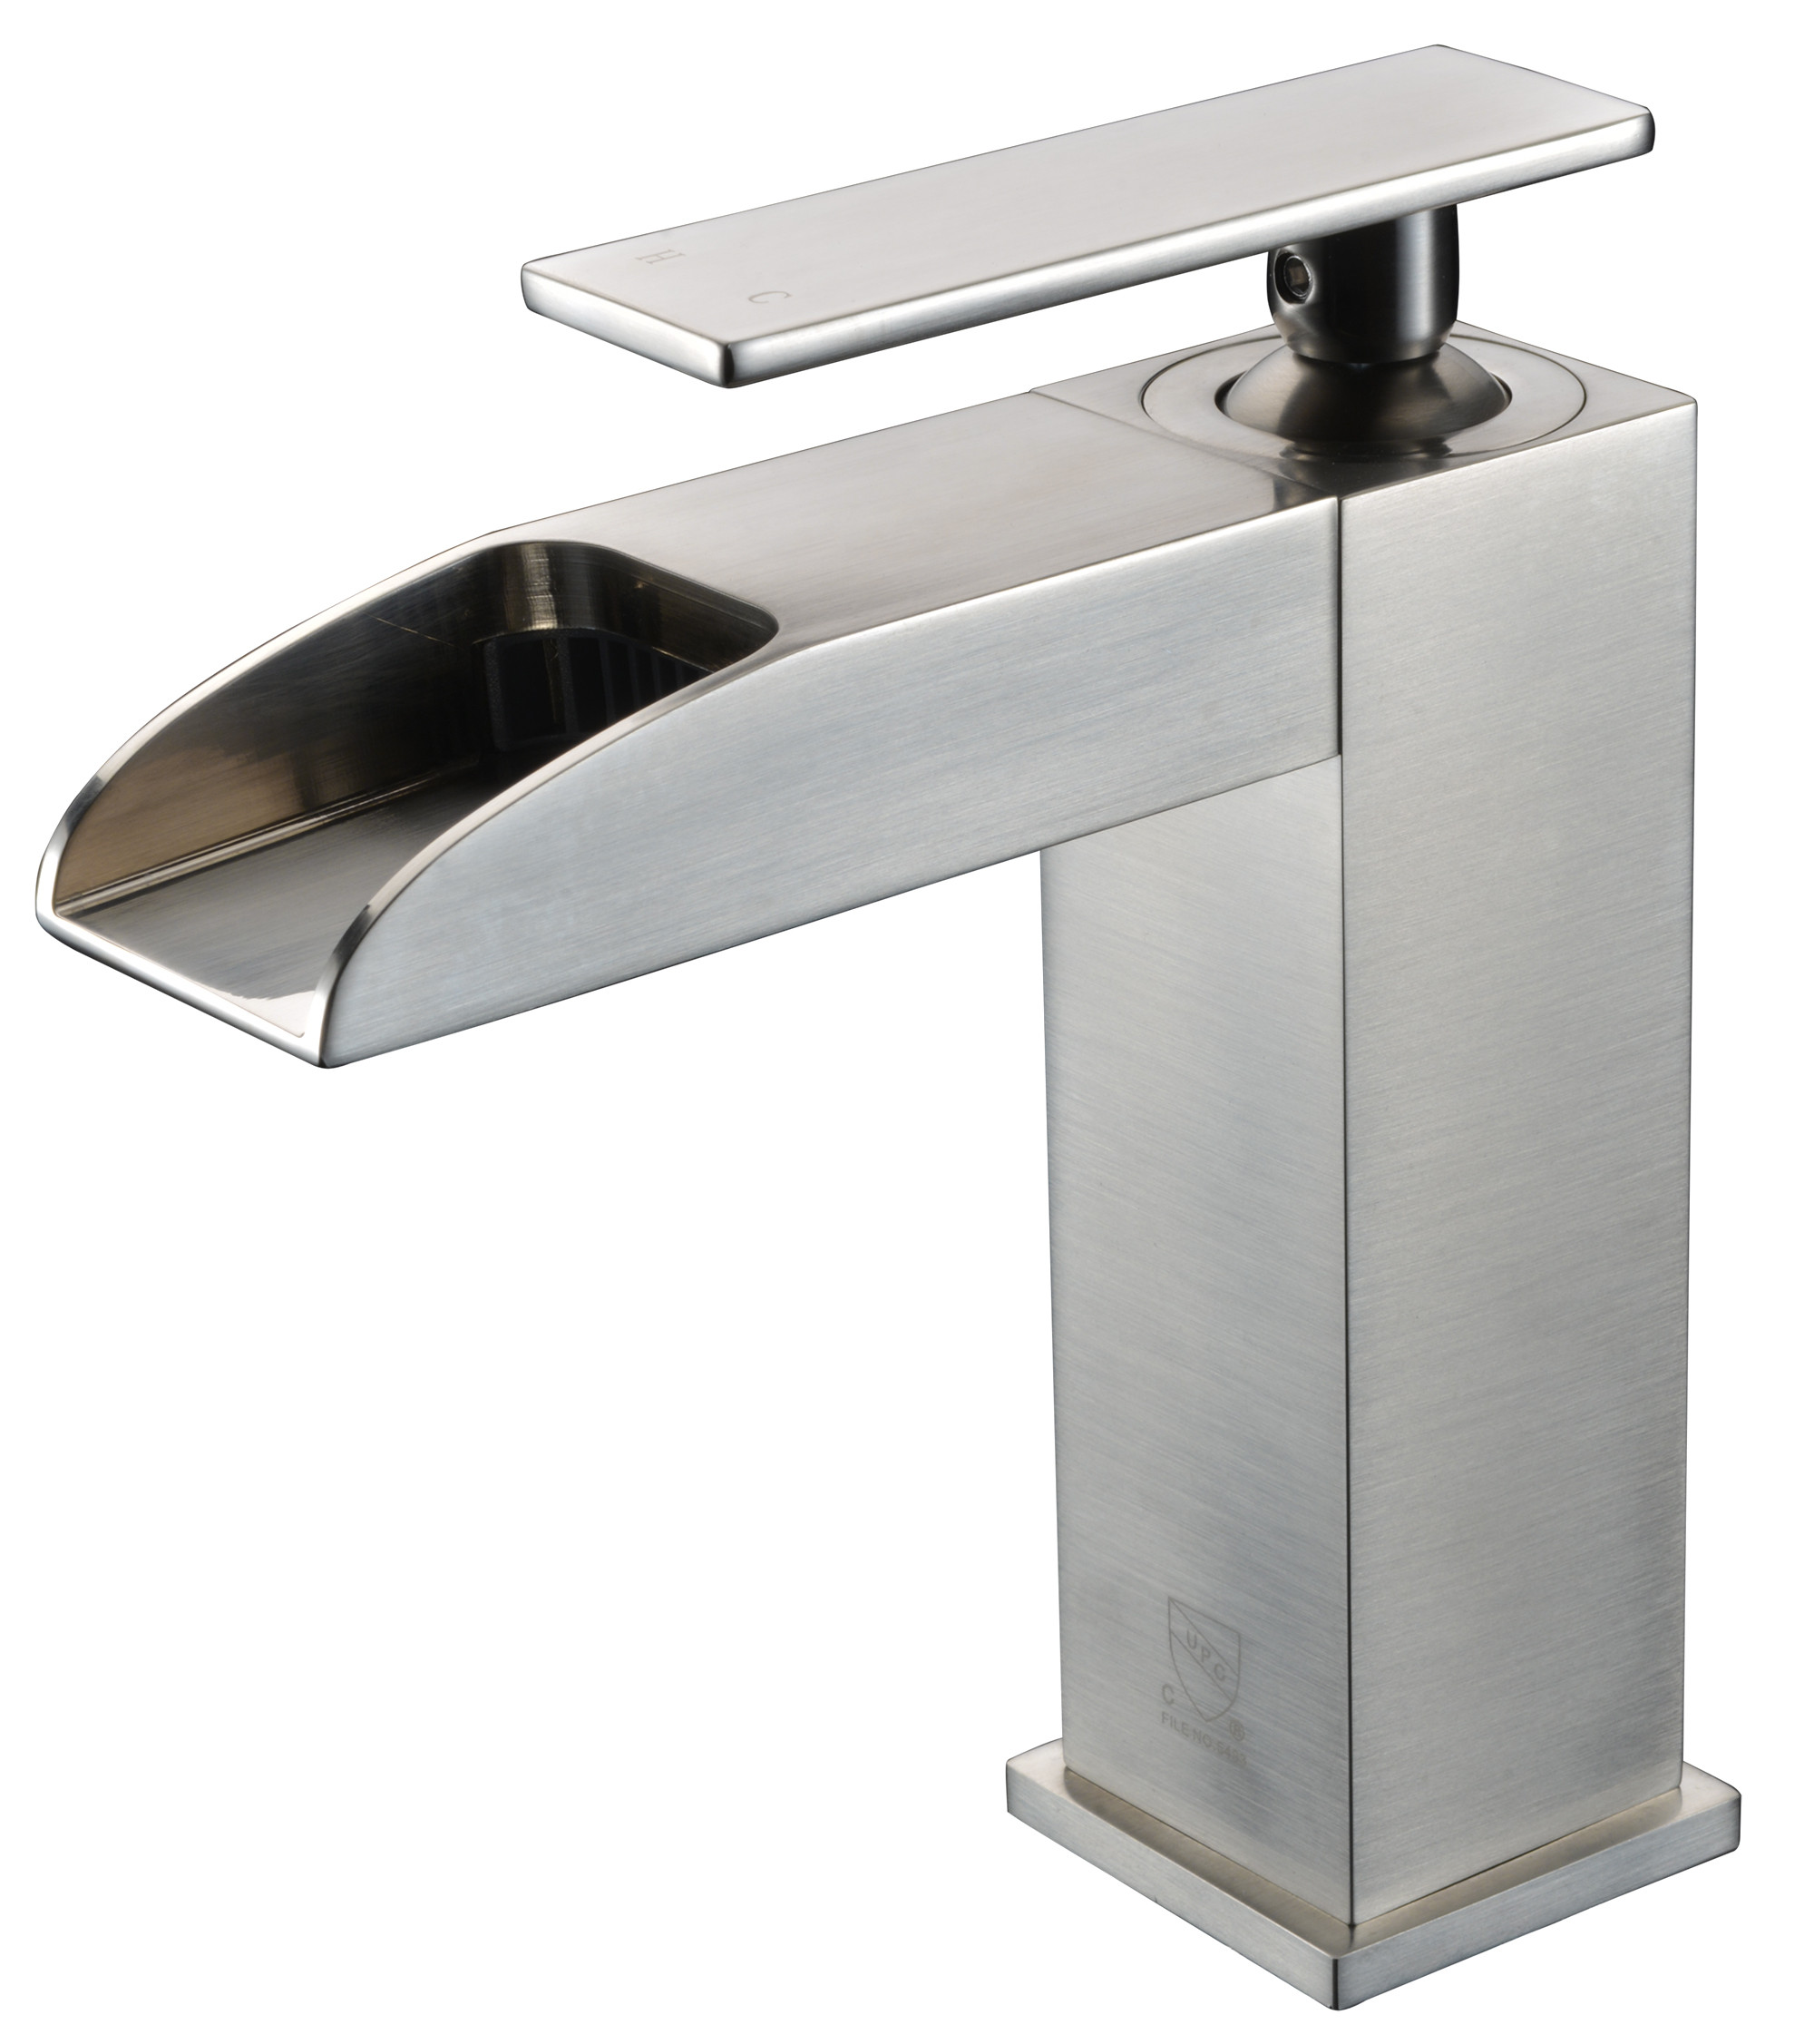 ALFI brand AB1598 Single Hole Waterfall Bathroom Faucet